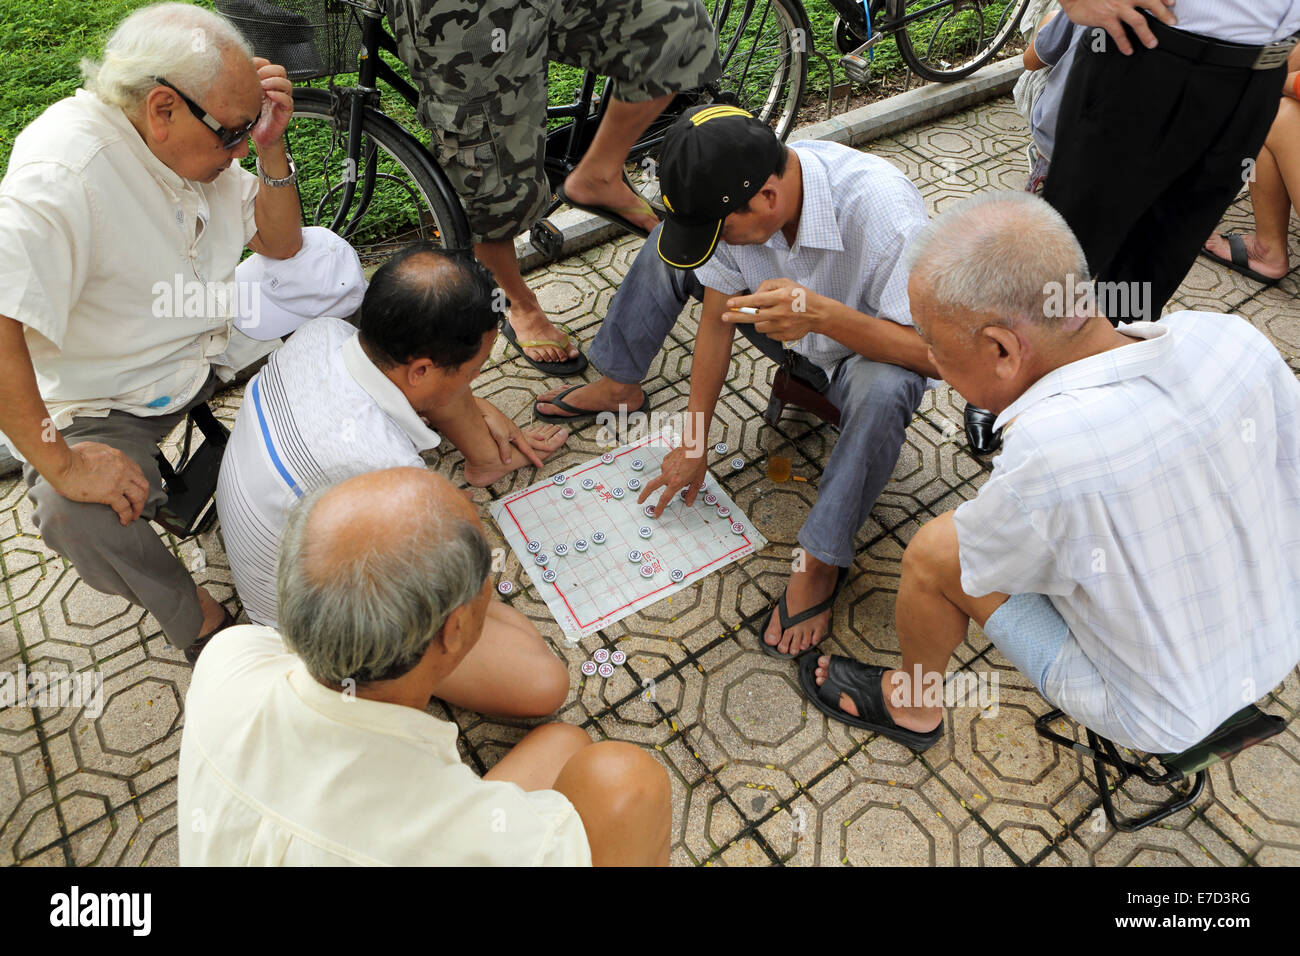 Men play a board game on a street in Hanoi, Vietnam. Stock Photo